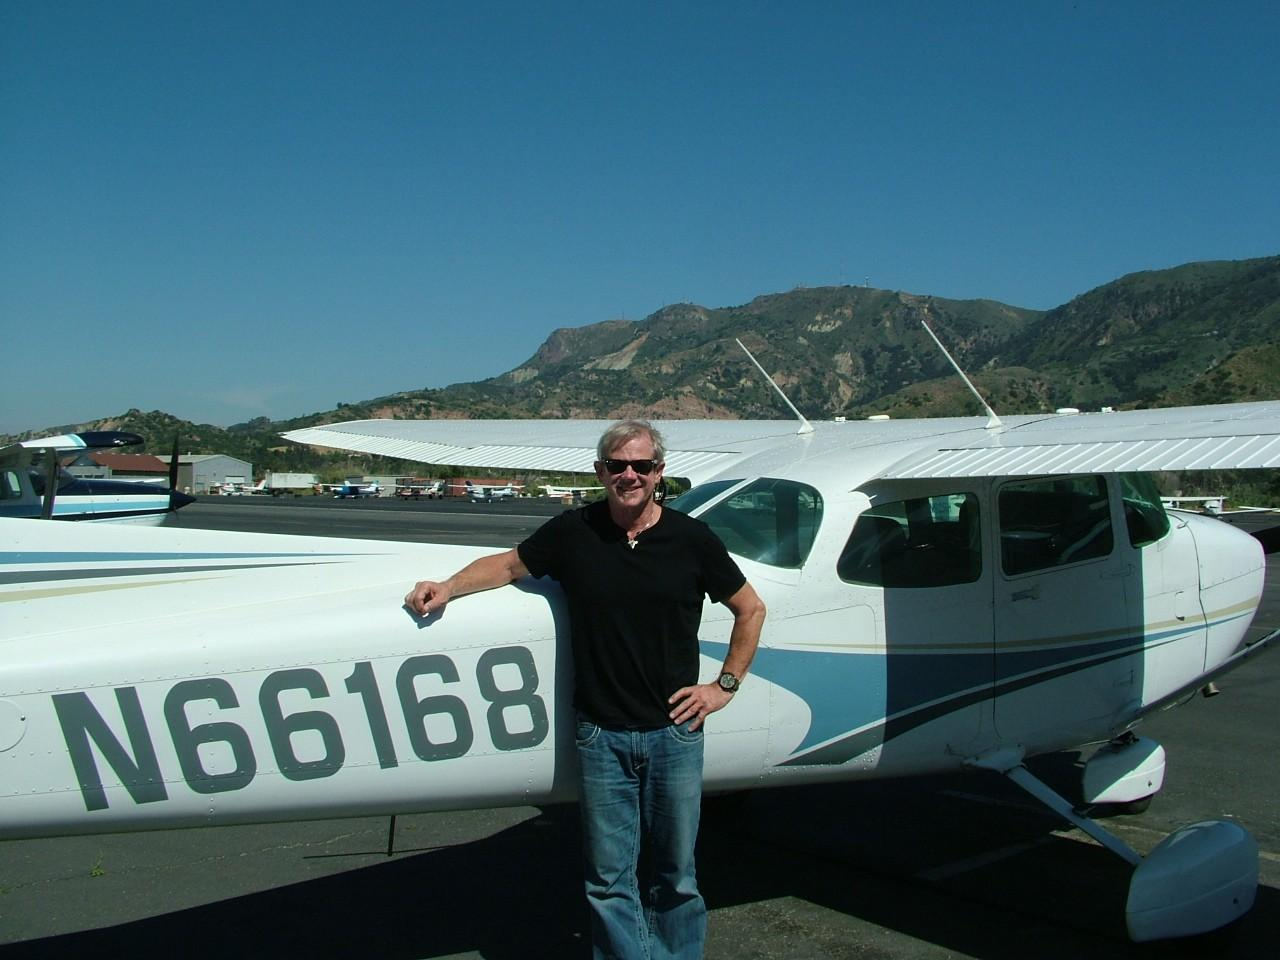 Private Pilot - Shawn Cordon